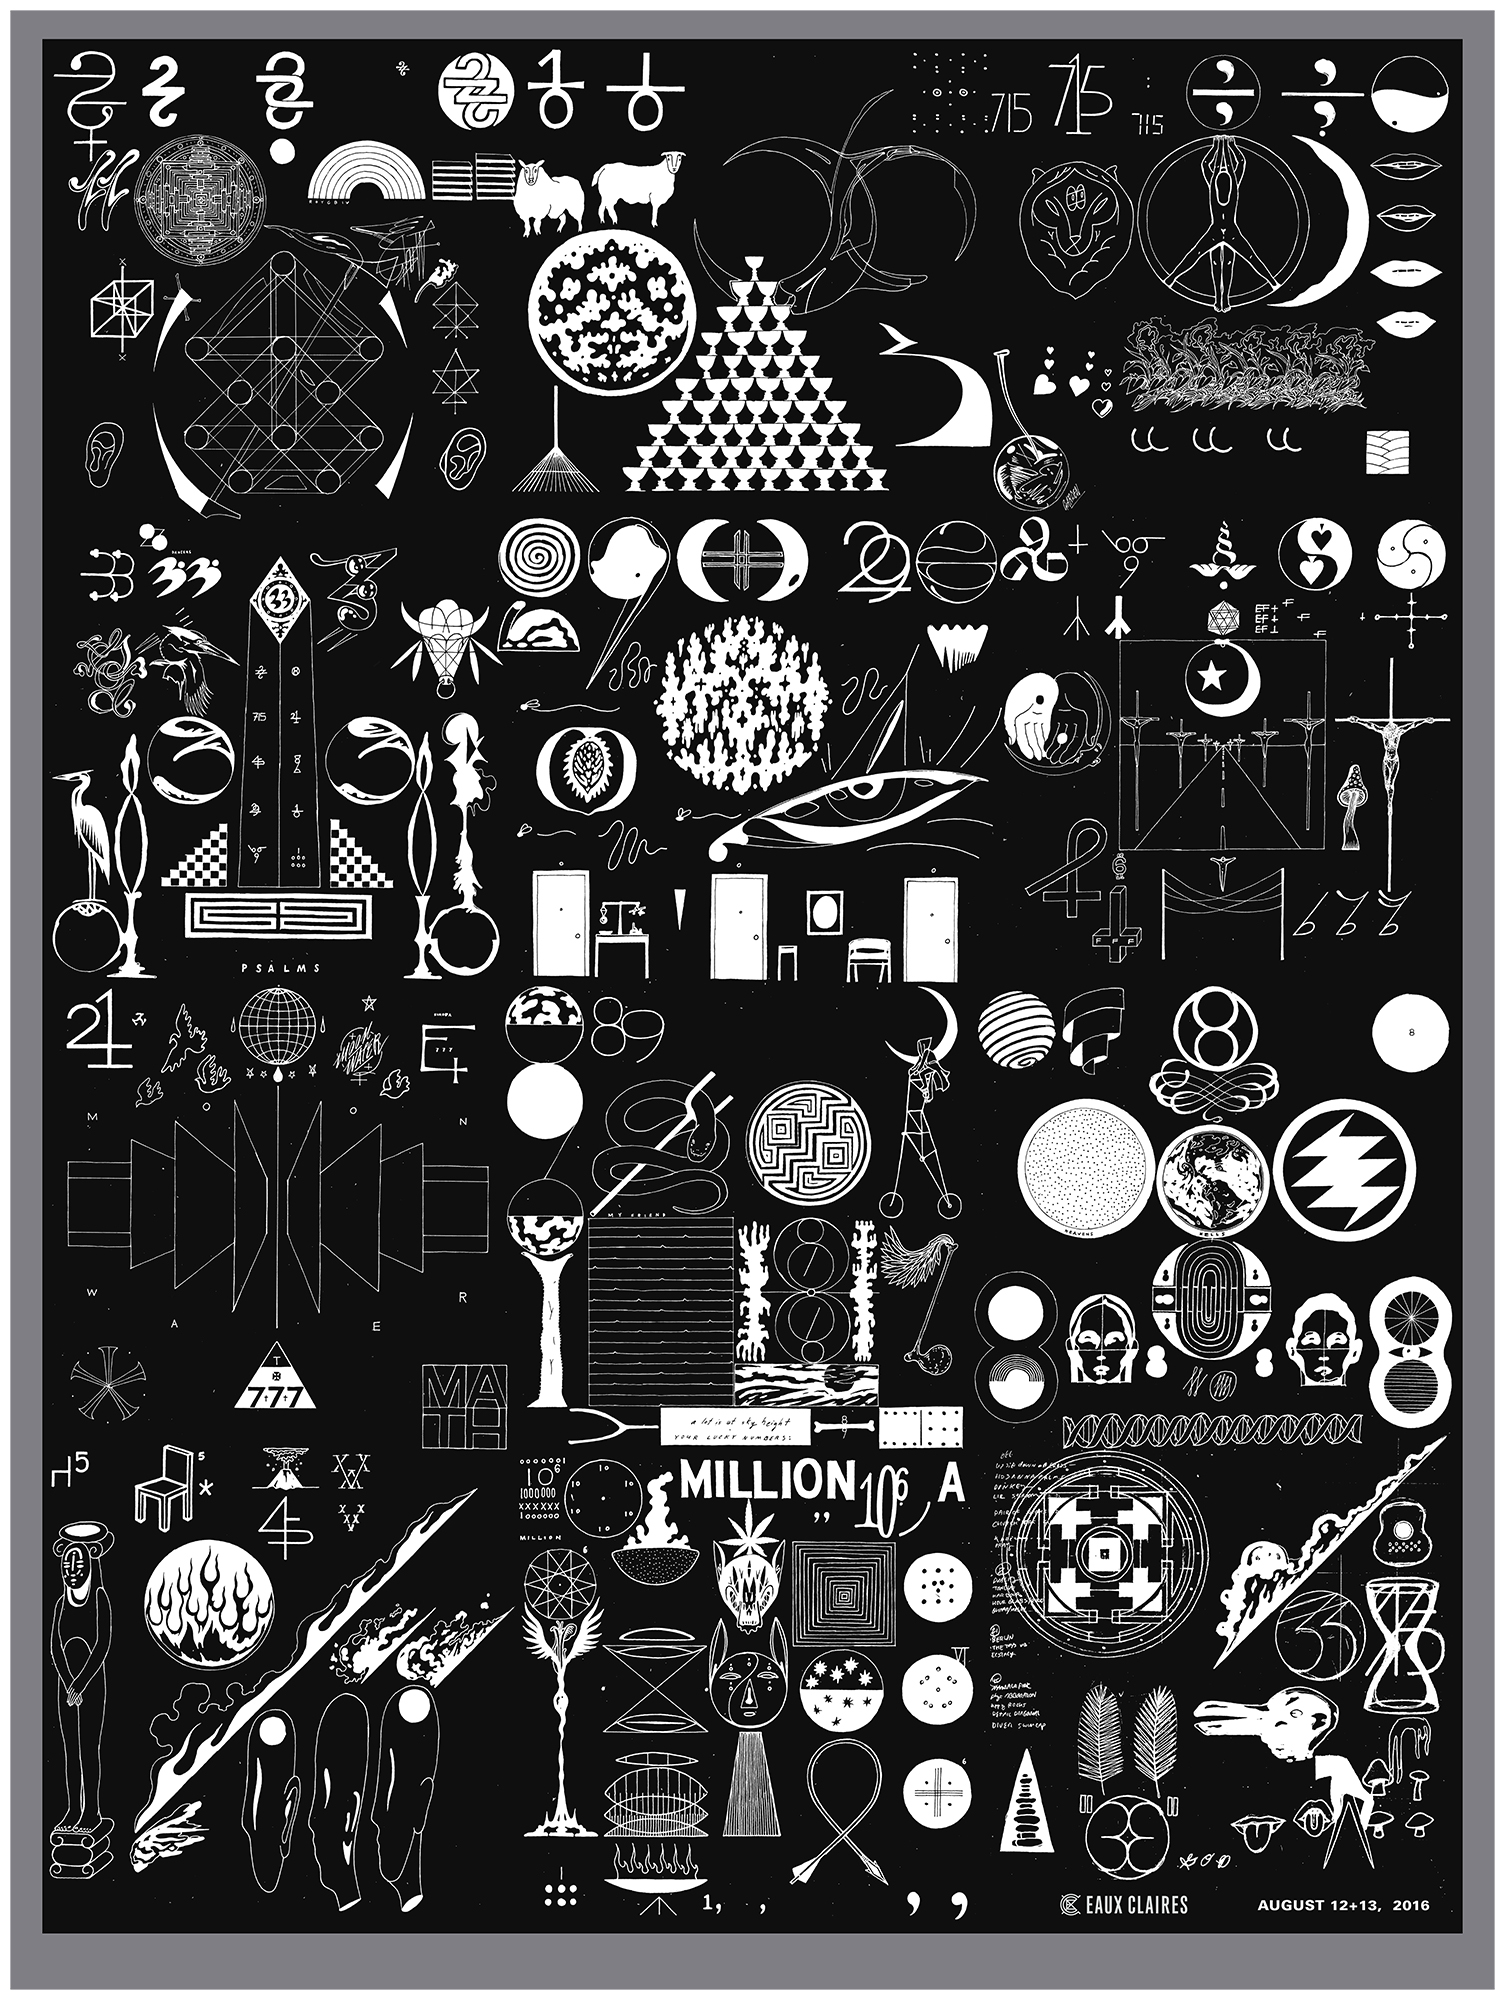 assortment of symbols and shapes on a poster